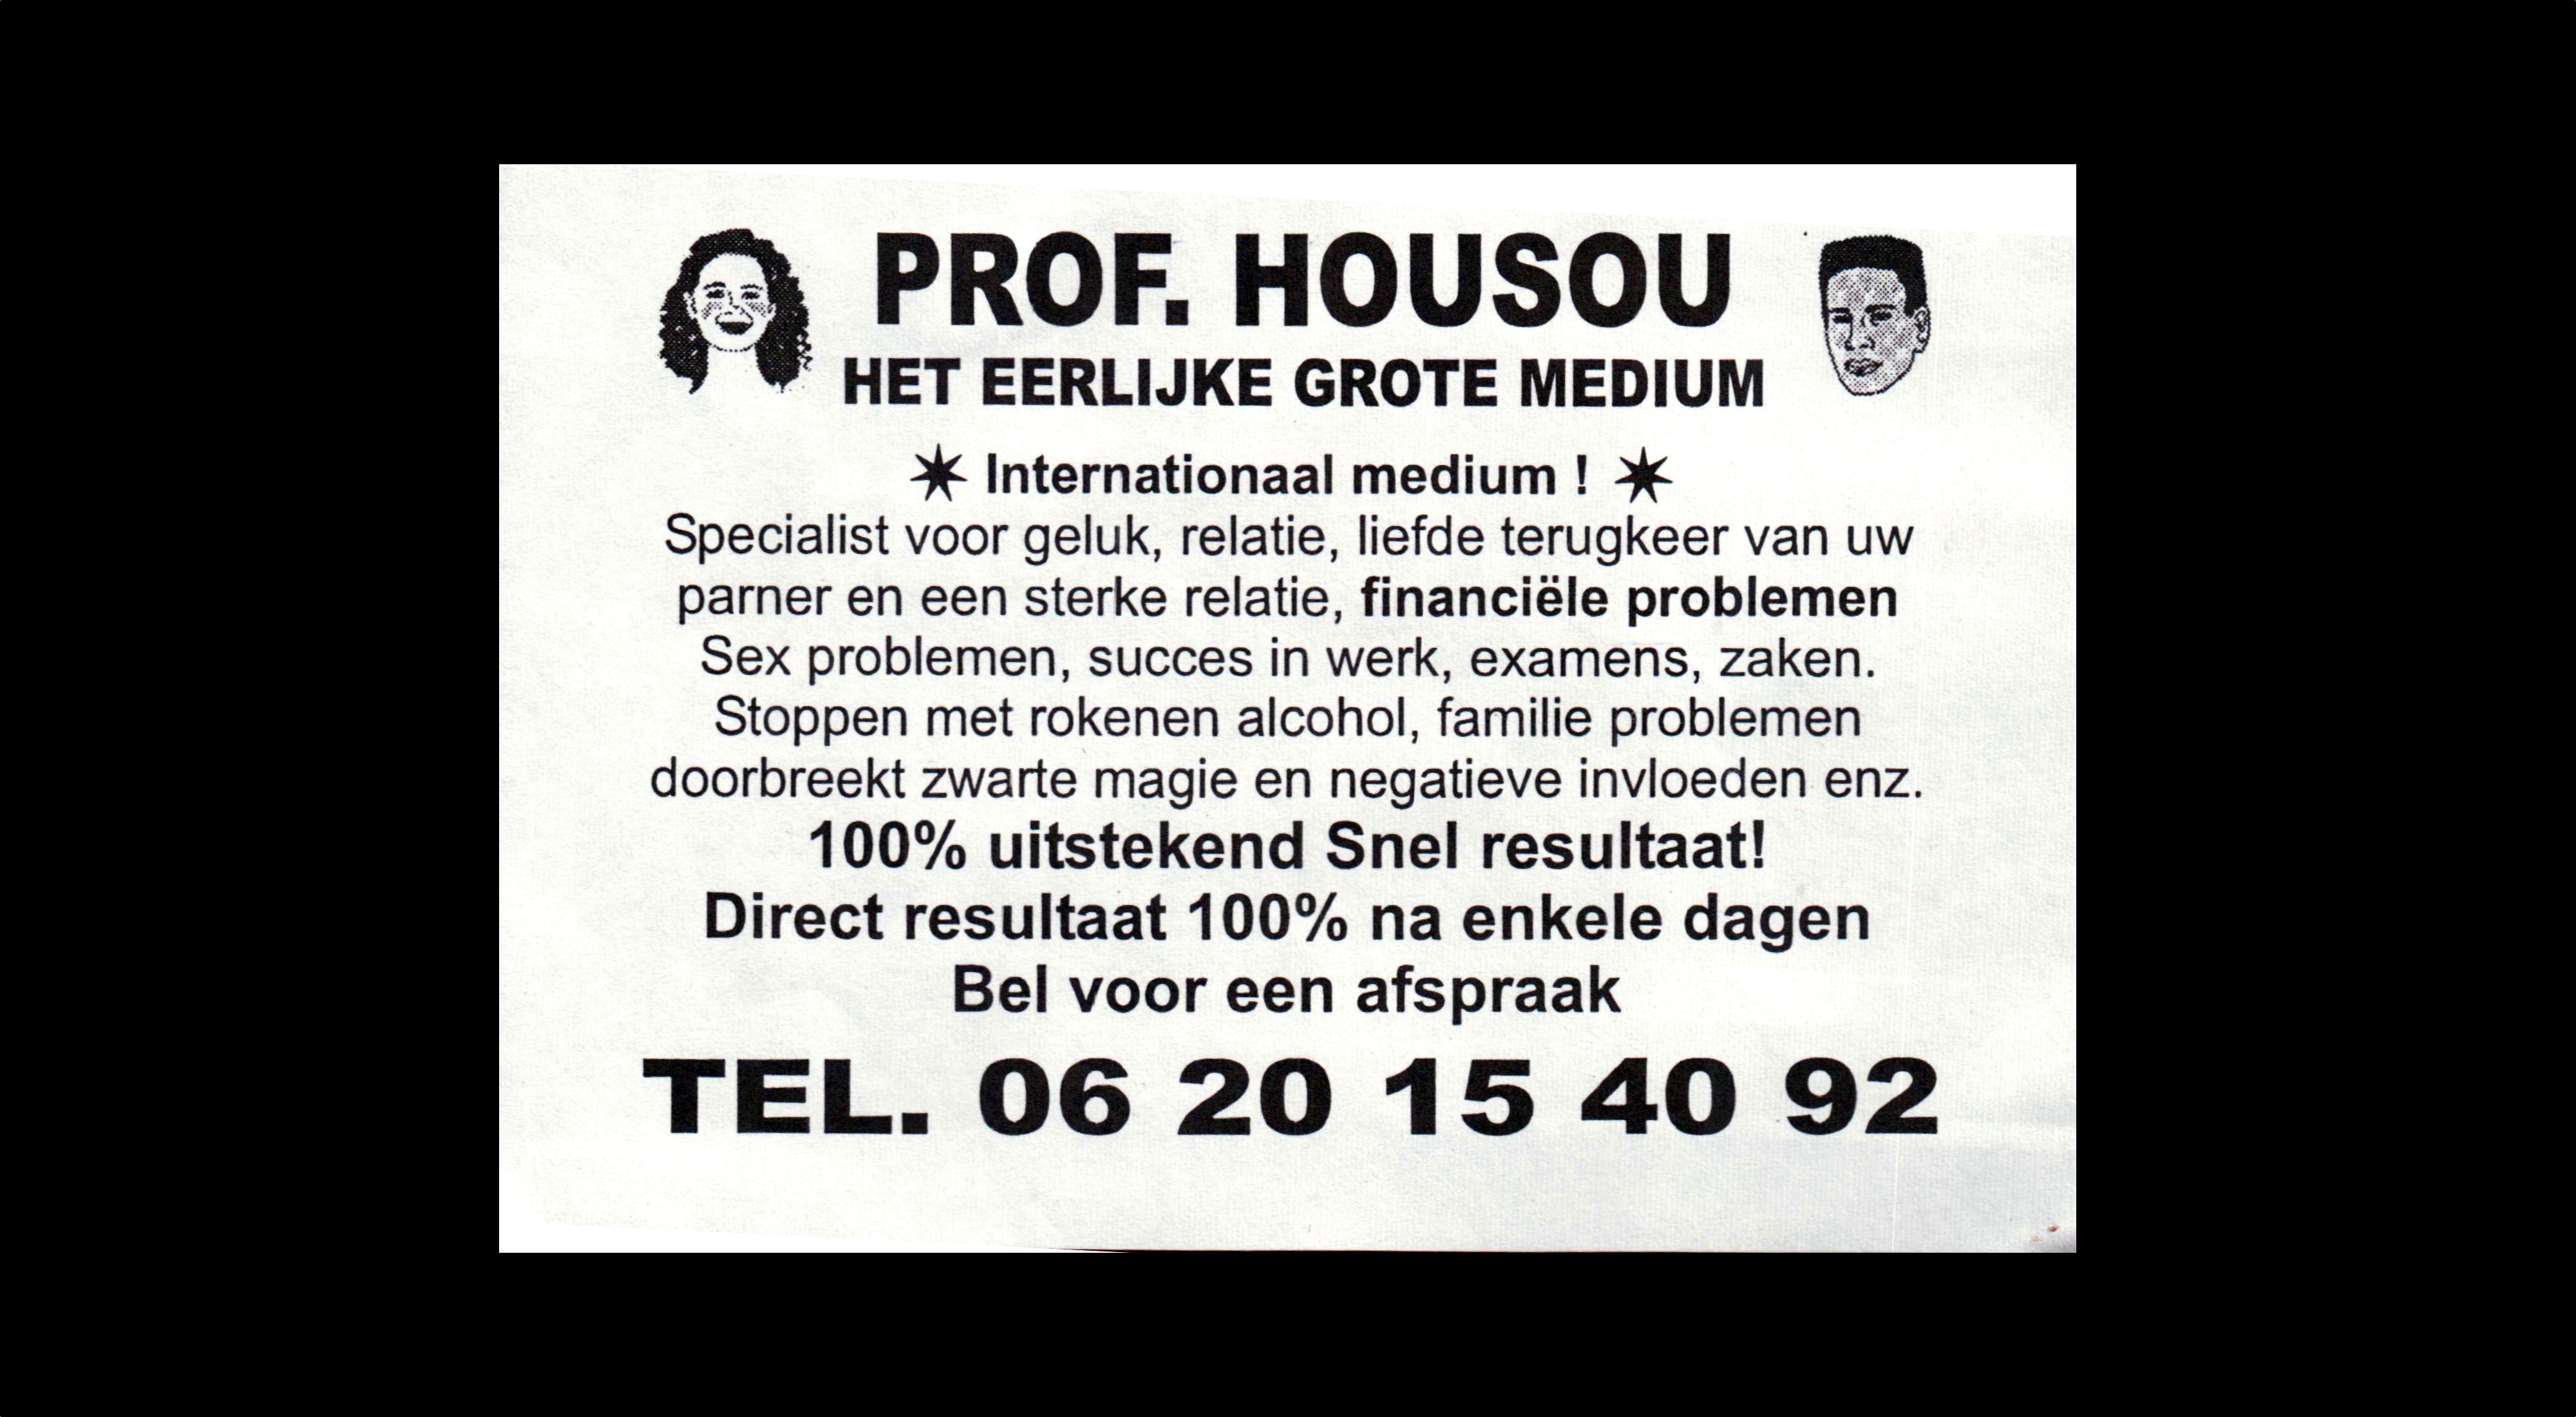 card of PROF. HOUSOU